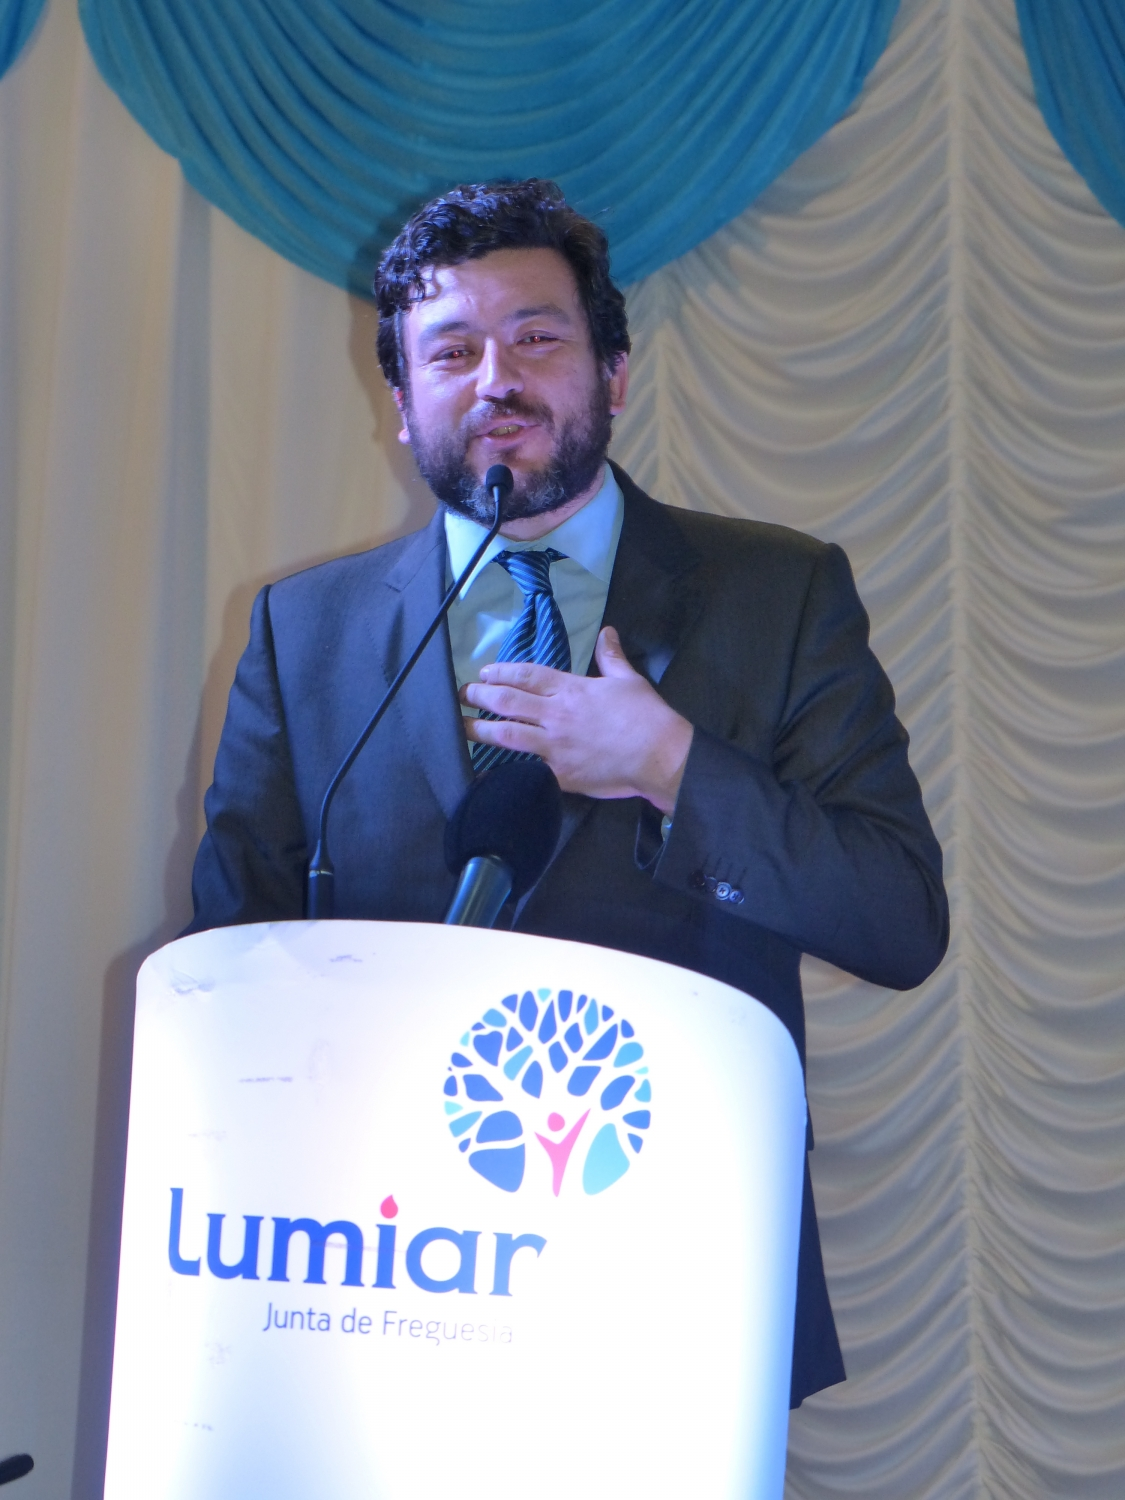 The President of  the Junta de Freguesia do Lumiar, Dr. Pedro Alves